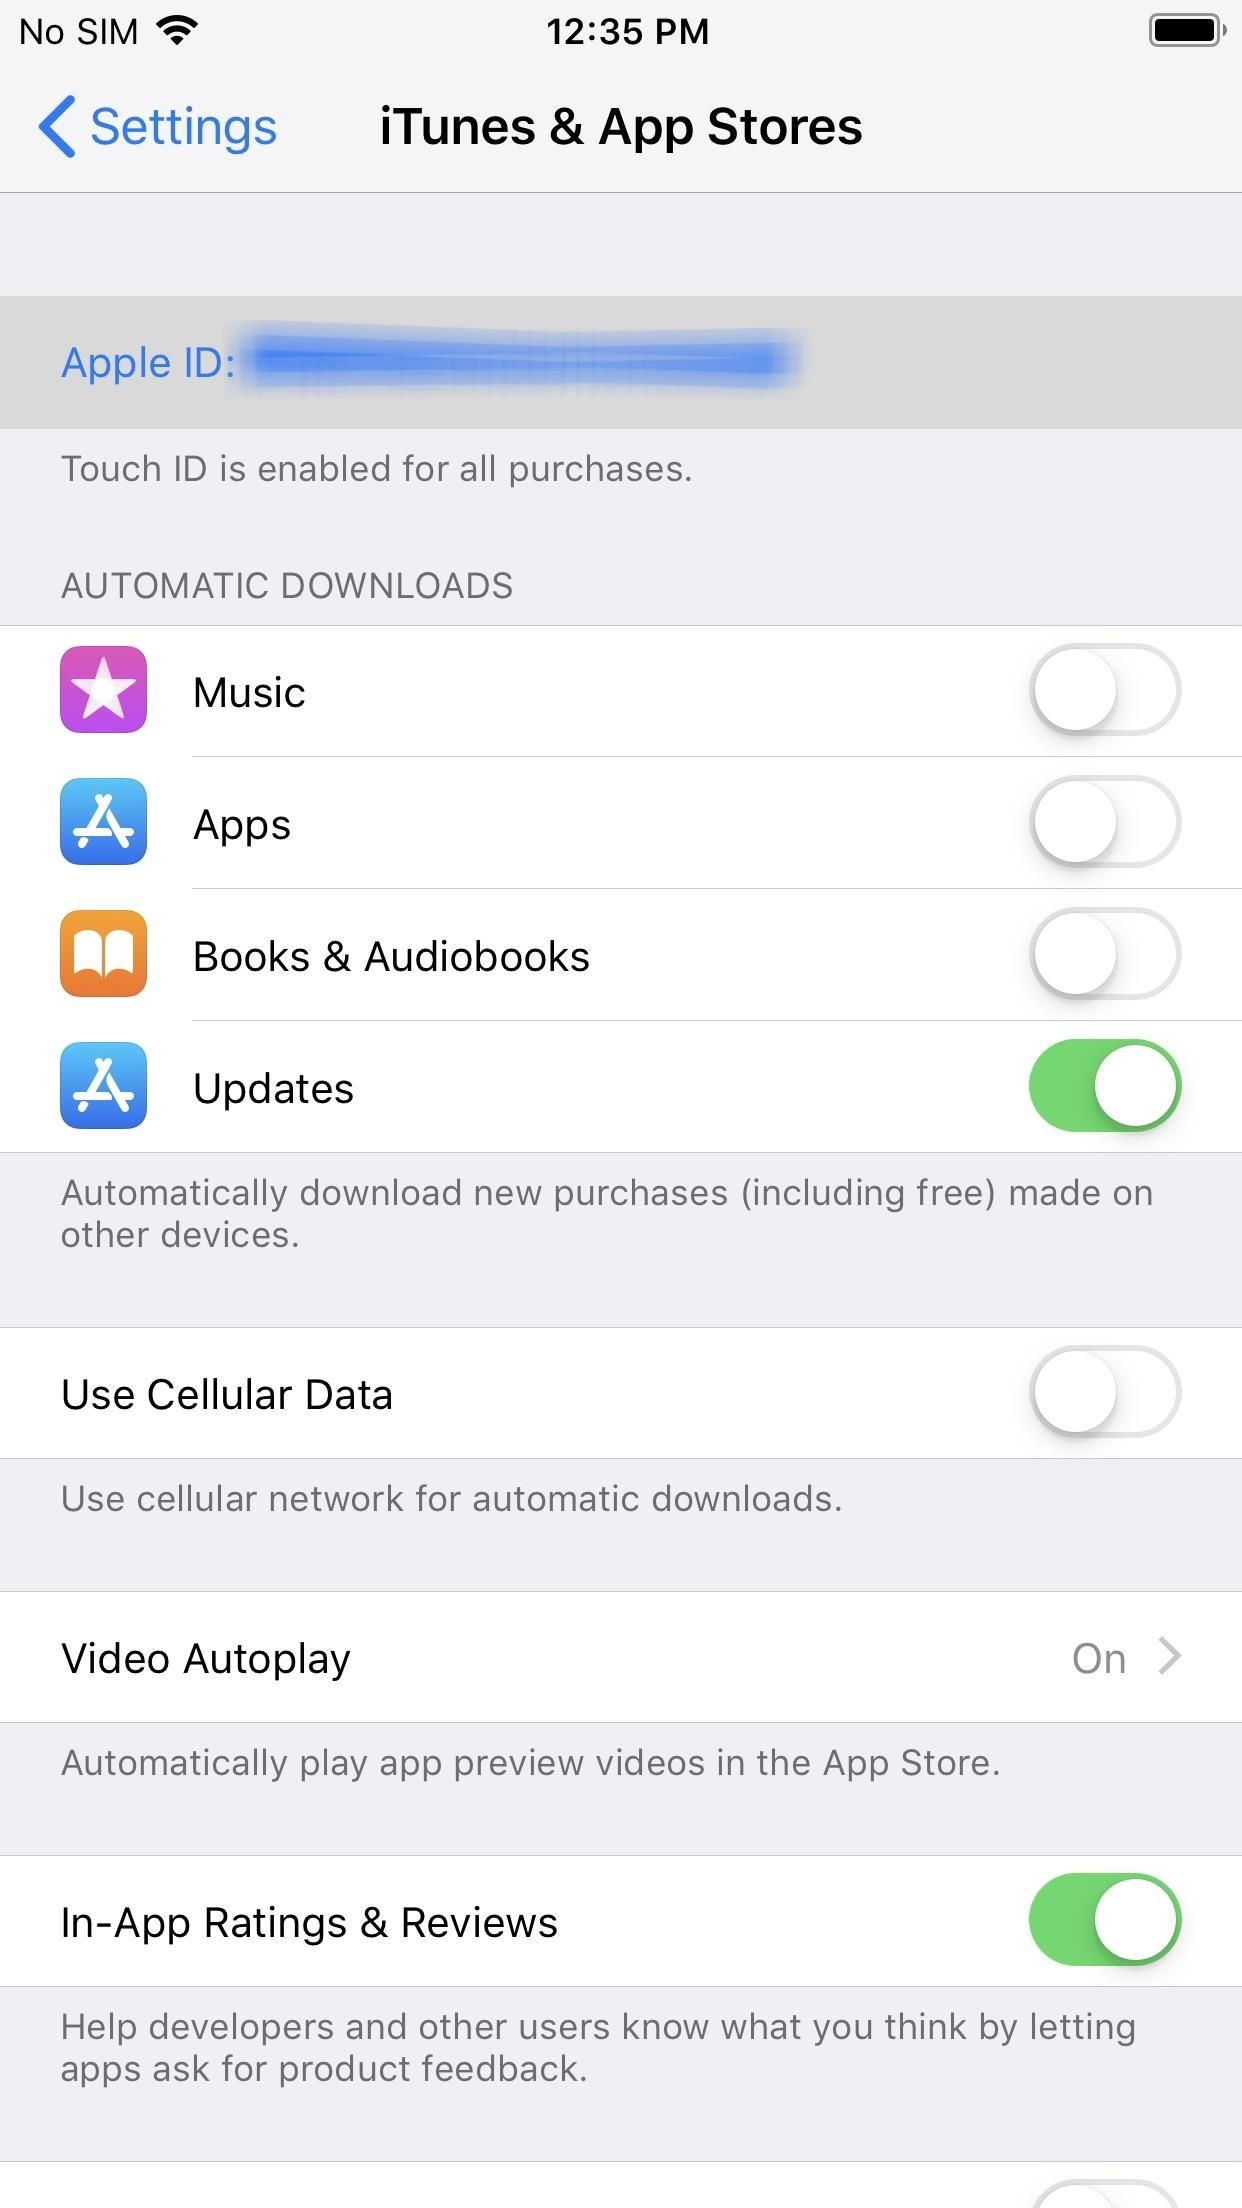 Itunes free trial subscription